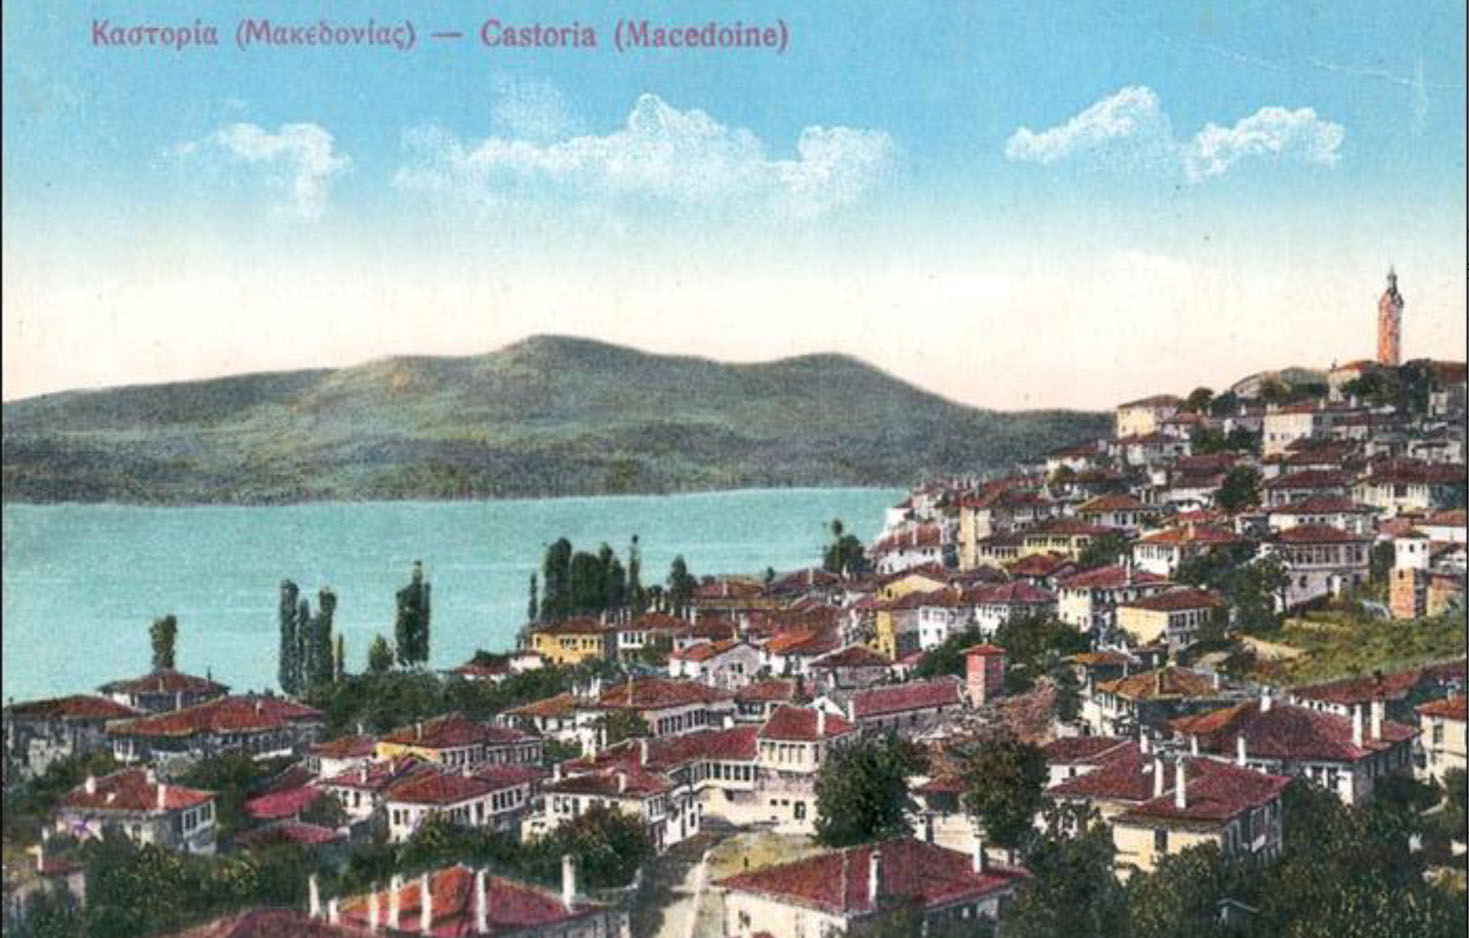 Bird's eye view of Kastoria, Greece in the 1900s - a sprawling coastal town full of trees and red-tile rooftops under a clear blue sky